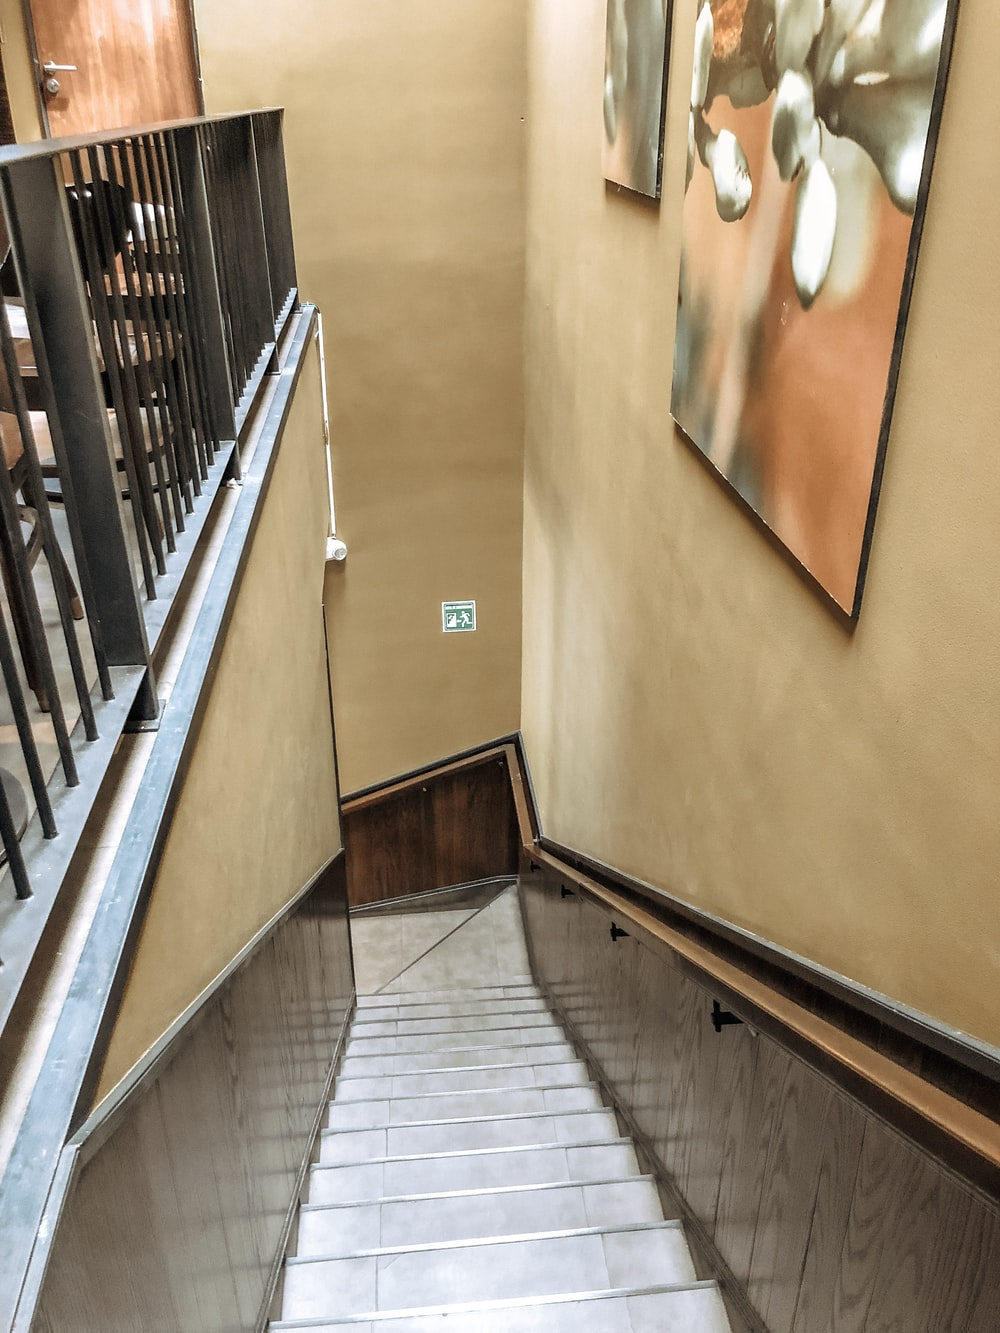 empty stairs near a painting close-up photography